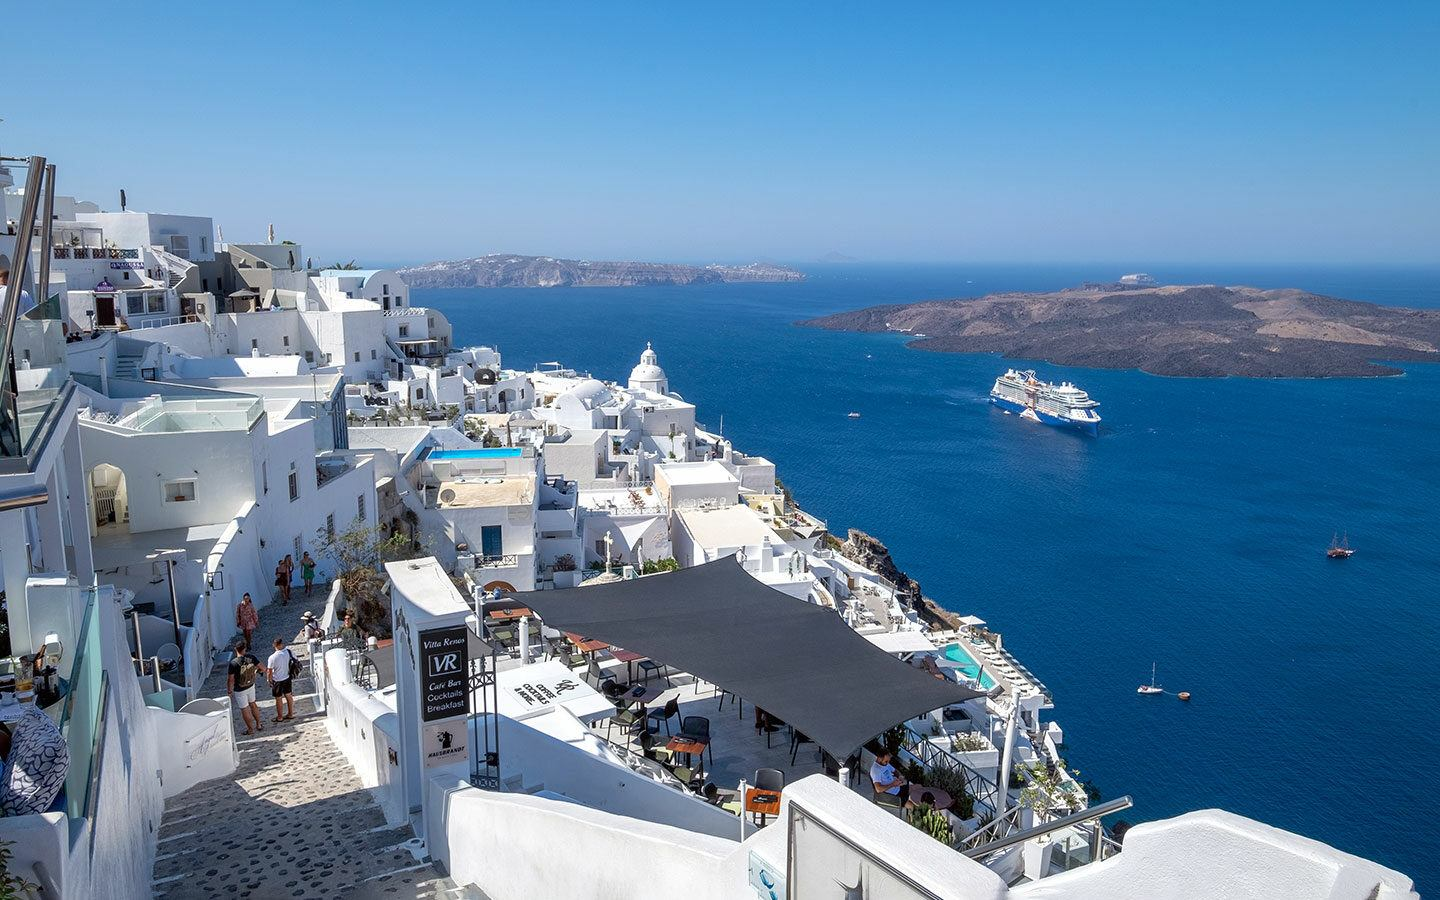 Looking down on Fira, Santorini, with Celebrity Apex cruise ship in the distance